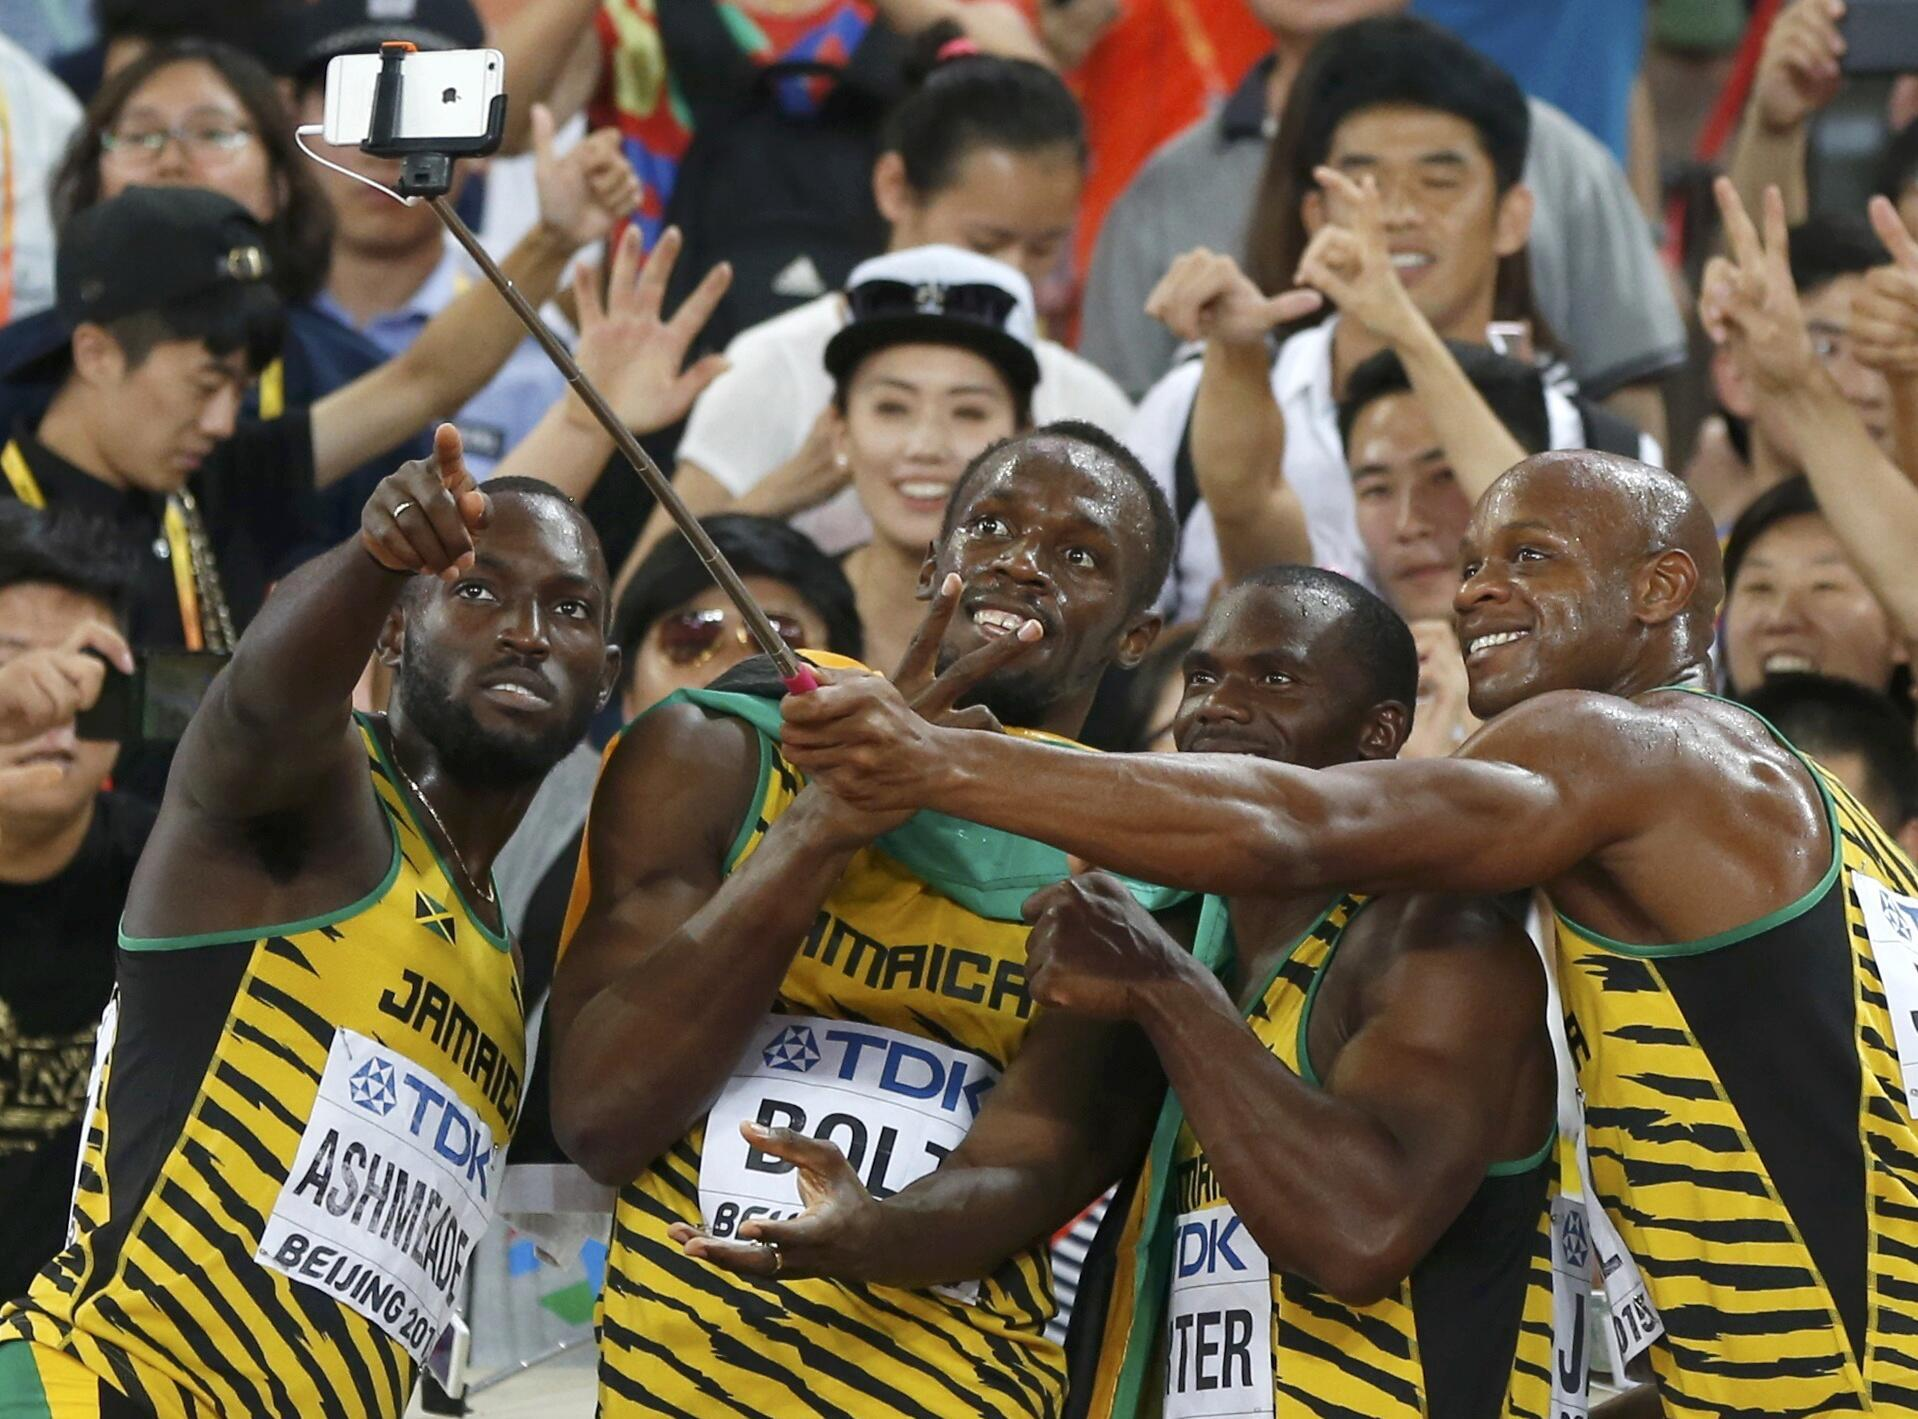 (L to R) Nickel Ashmeade, Usain Bolt, Nesta Carter and Asafa Powell of Jamaica pose for selfies after winning gold at the men's 4 x 100 metres relay final